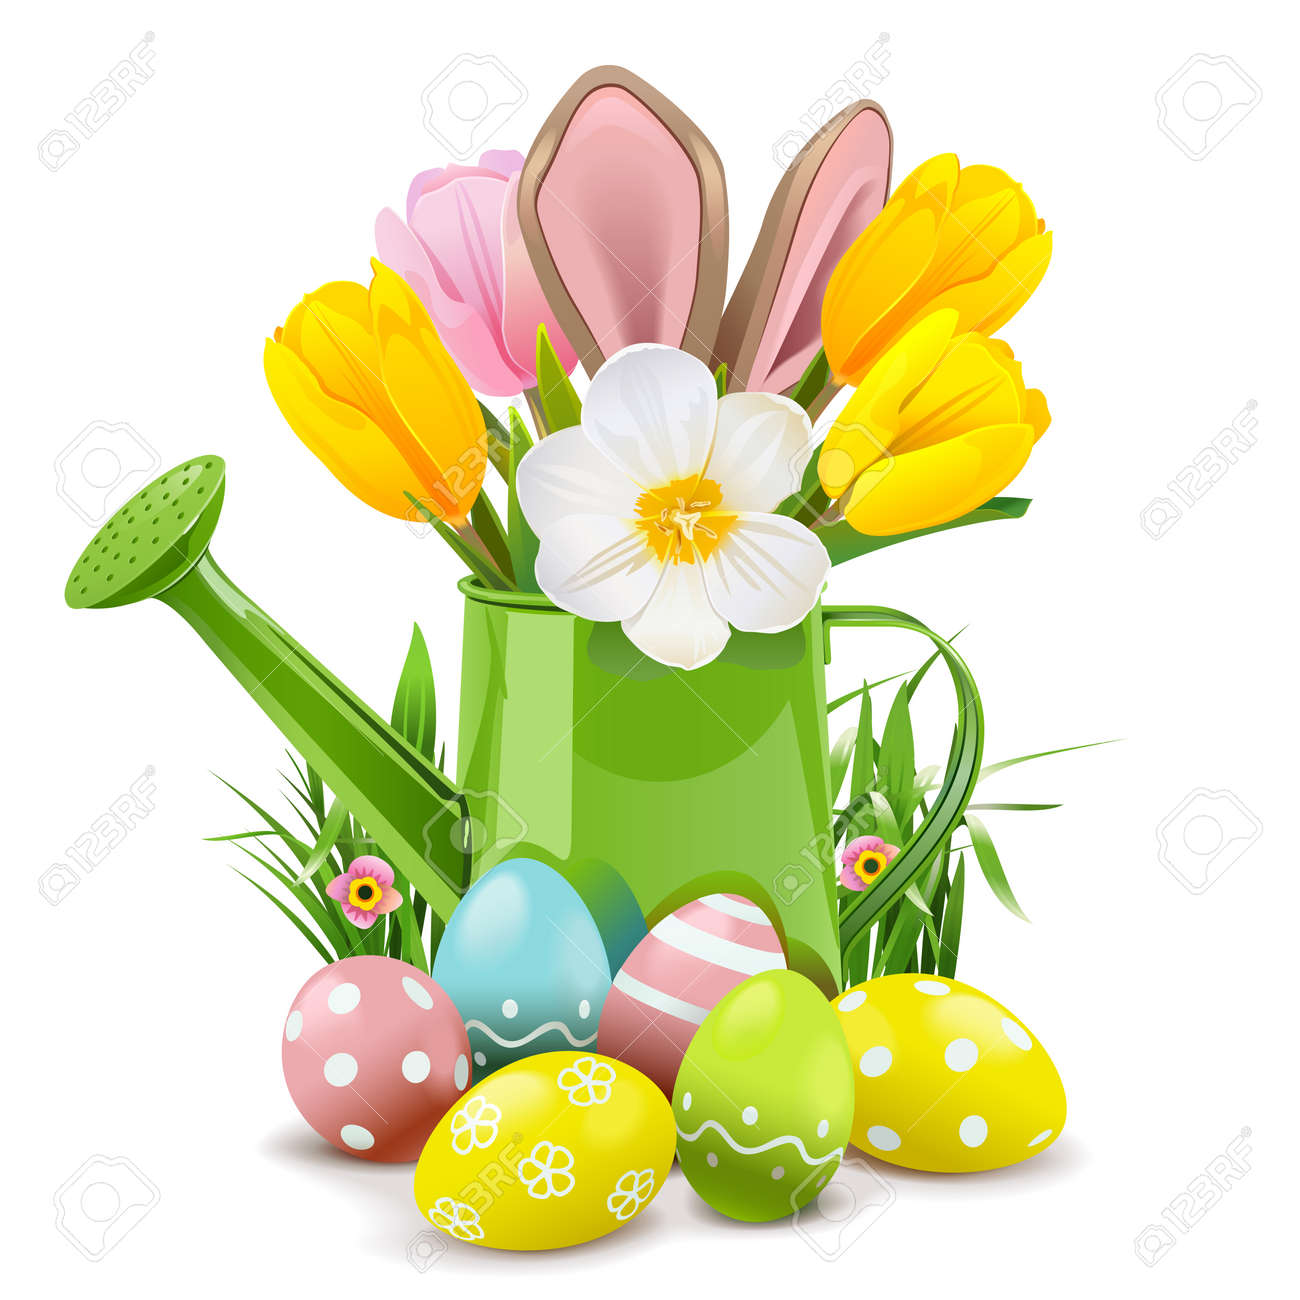 Easter Watering Can with Rabbit - 168703215